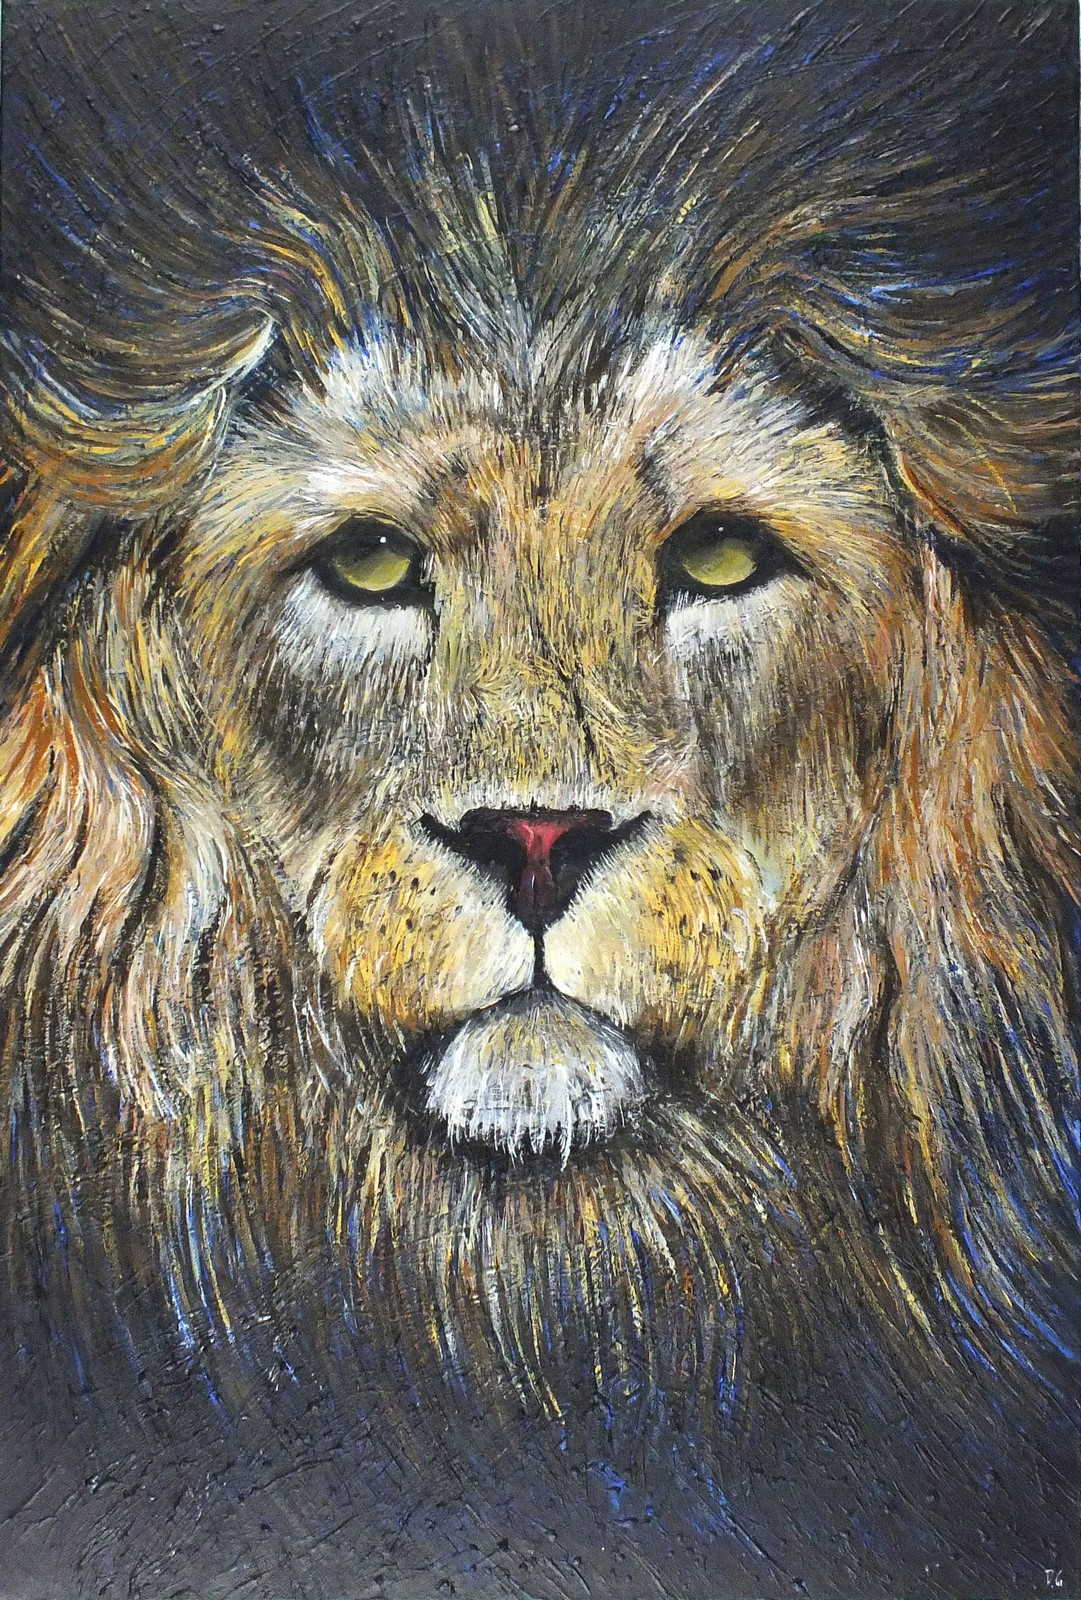 Lot 365 - Diane GRIFFITHS (British b.1981) Lion Contemplation, Acrylic on canvas, Signed with initials lower